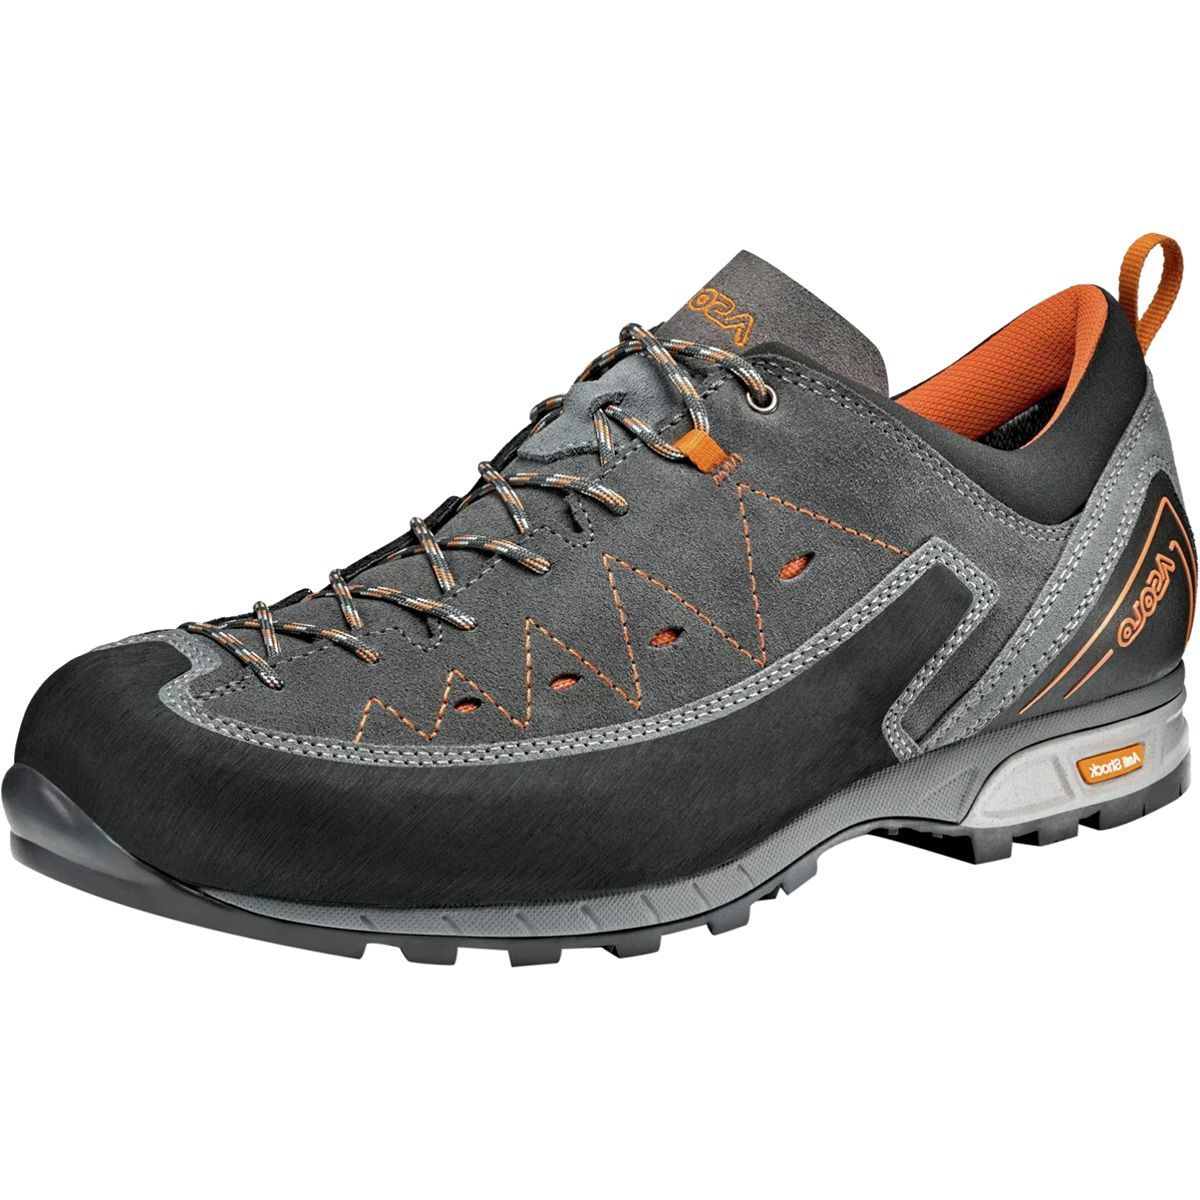 Asolo Apex Shoe - Men's